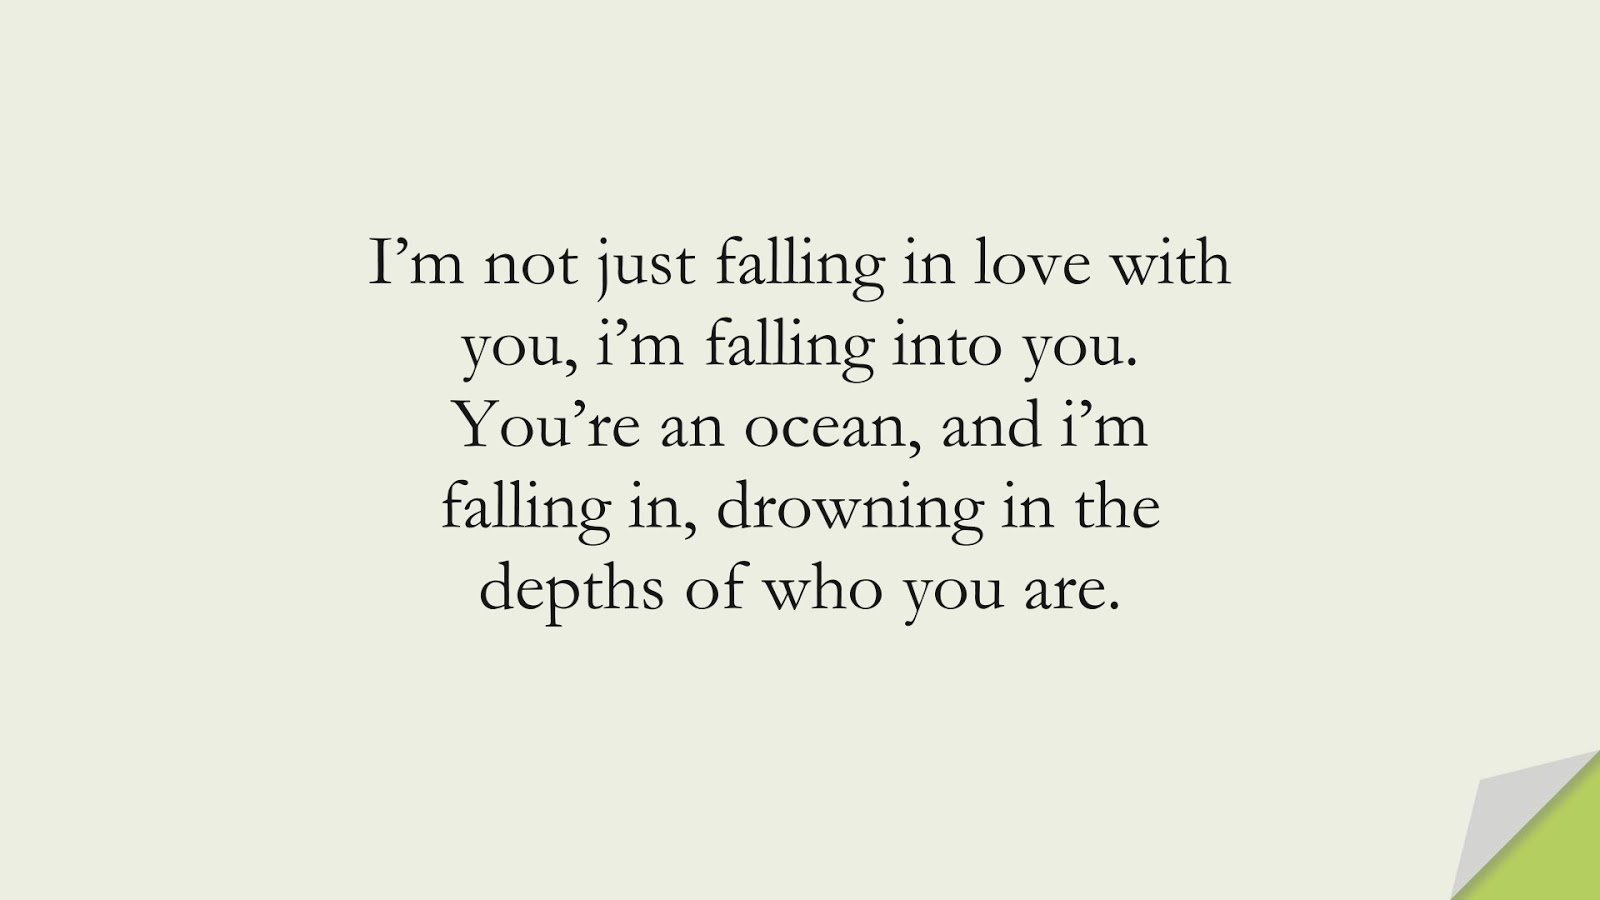 I'm not just falling in love with you, i'm falling into you. You're an ocean, and i'm falling in, drowning in the depths of who you are.FALSE